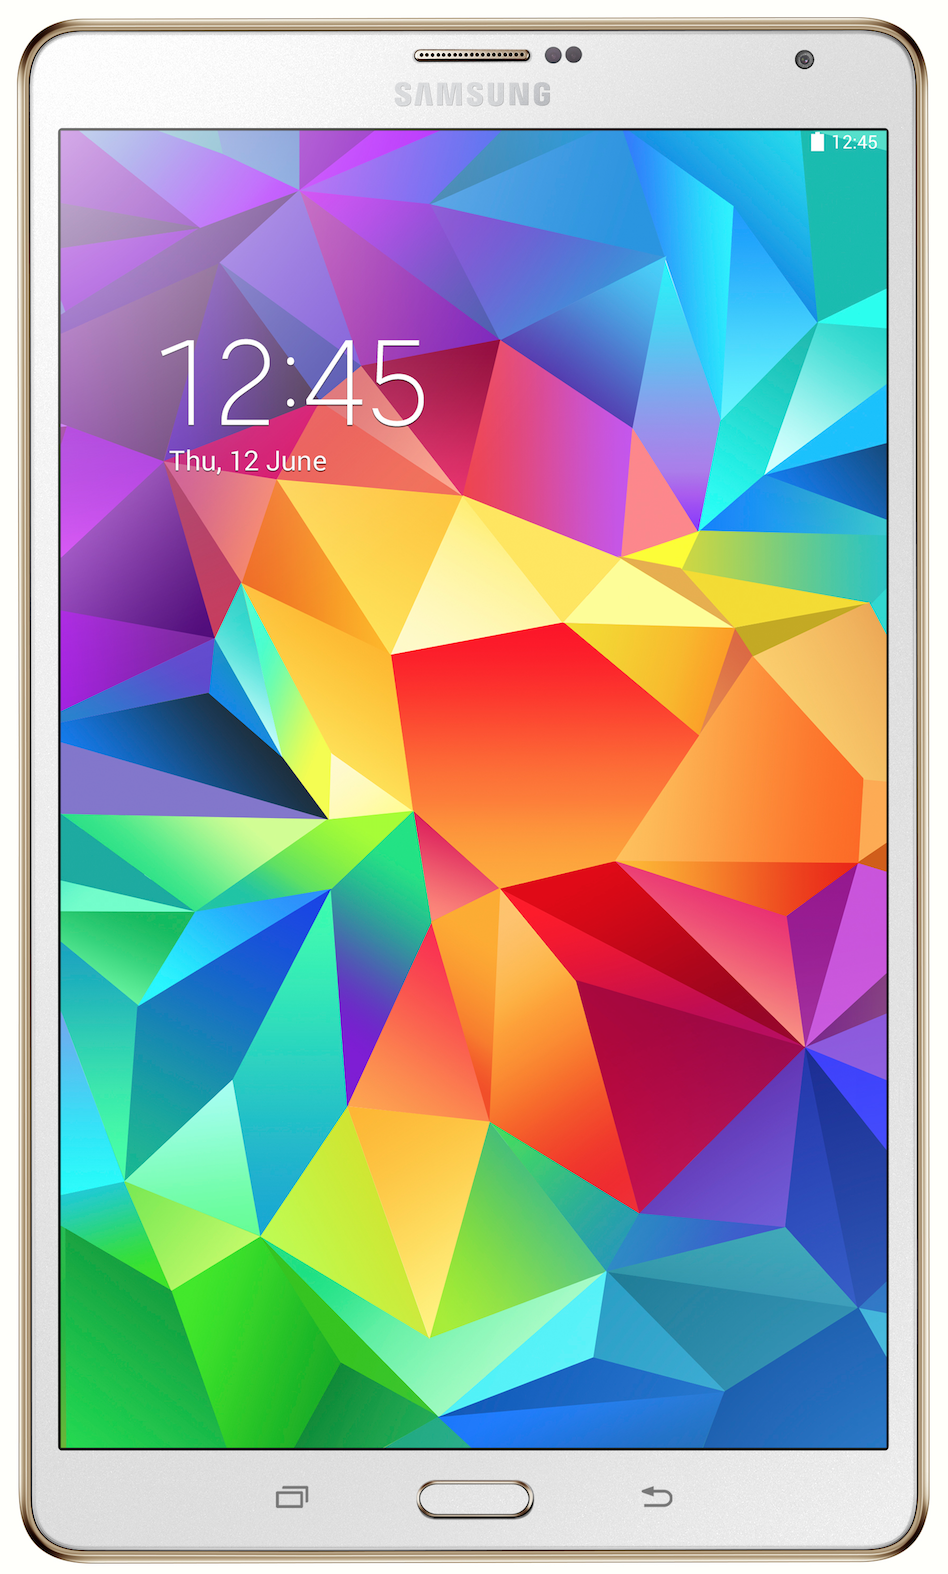 Samsung Galaxy Tab S (8.4) Review: The Best Android Tablet Yet